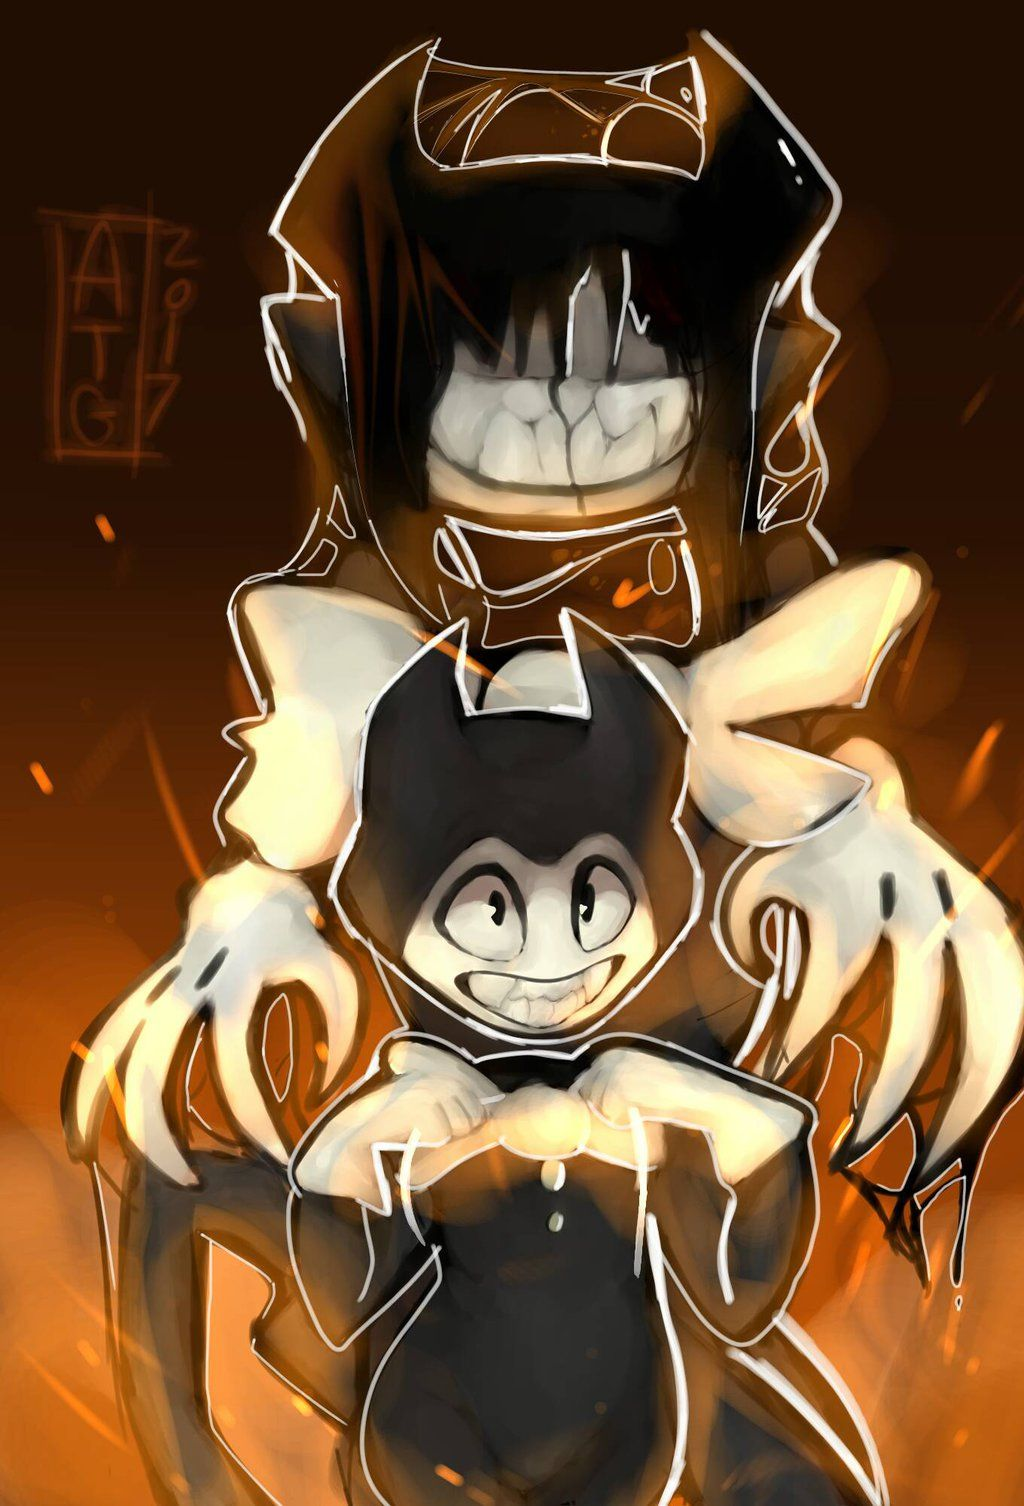 Look Back Bendy And The Ink Machine Fan Art By Puijela10 Bendy And The Ink Machine Art Fan Art